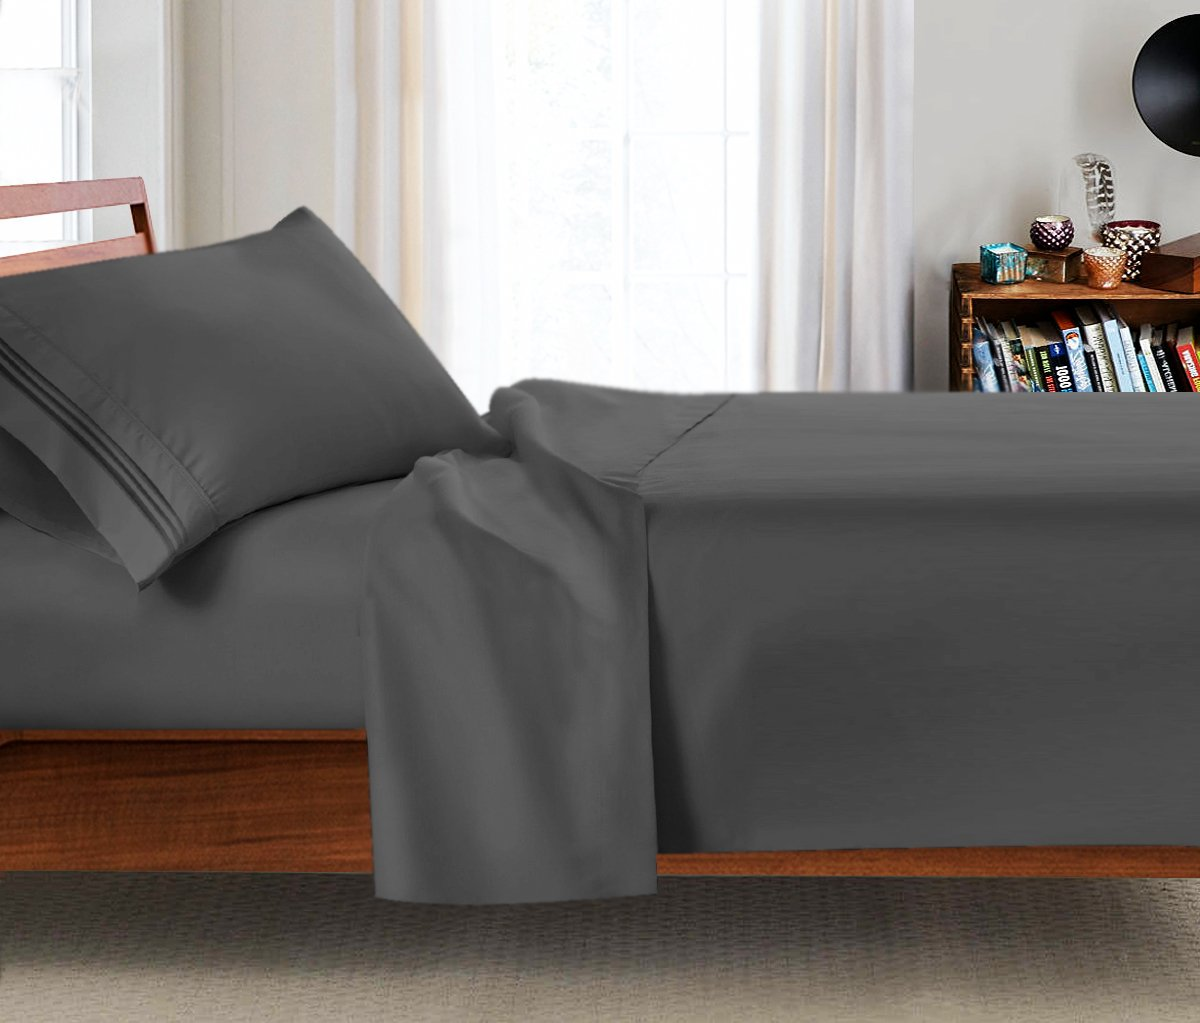 College Dorm Room 3Pc Bed Sheet Set, Twin-Extra Long Size 39''x 80'' - Hypoallergenic Brushed Microfiber Sheets. By Clara Clark